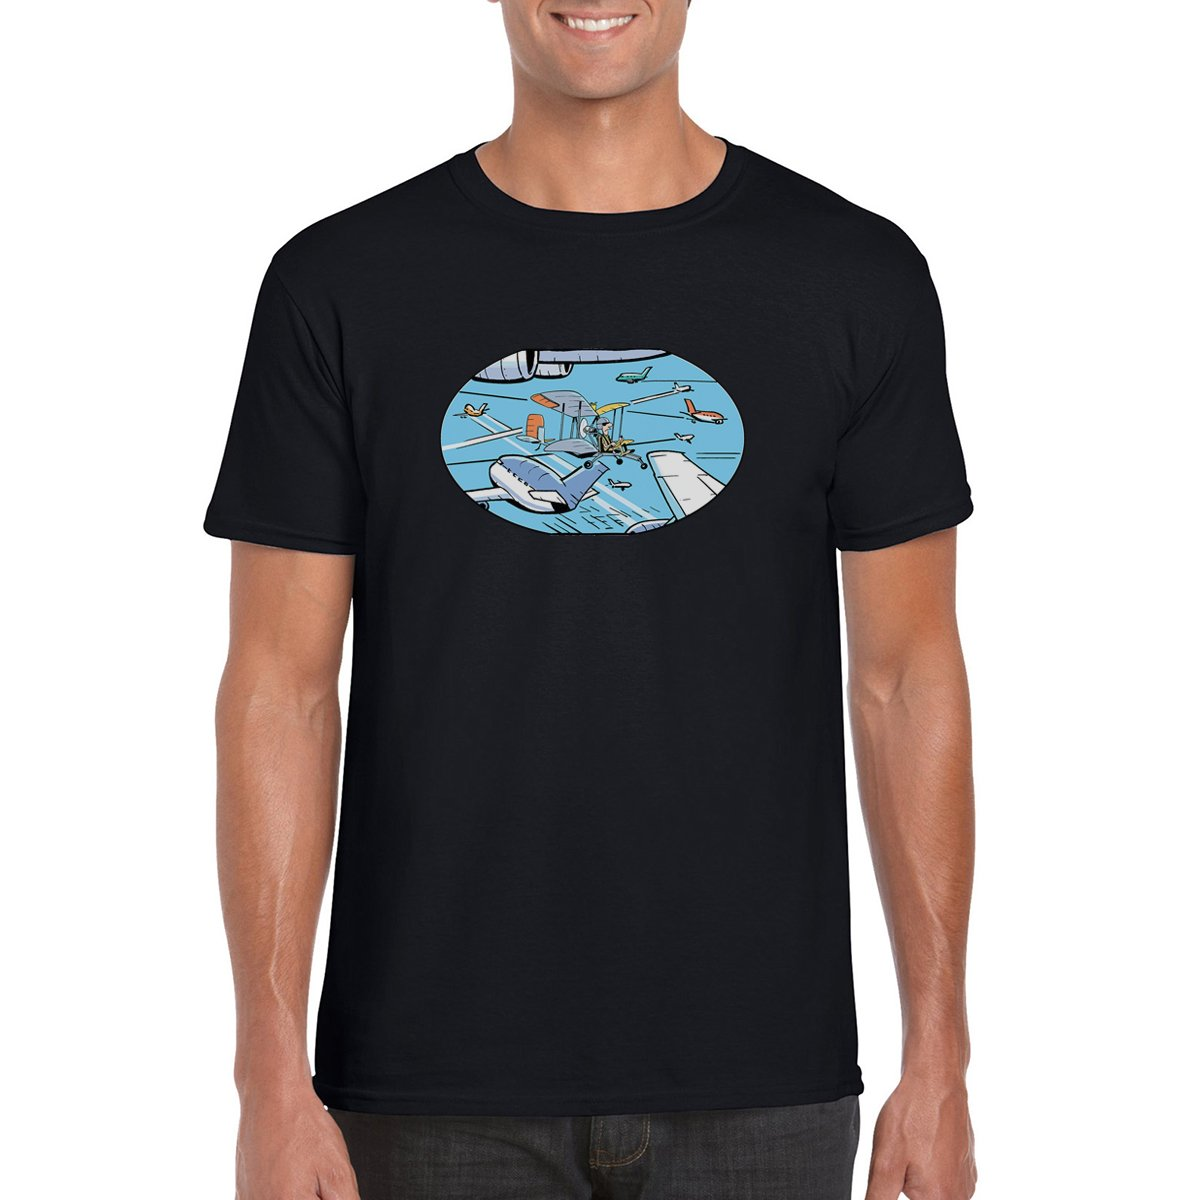 Swamp Air Traffic Control T Shirt